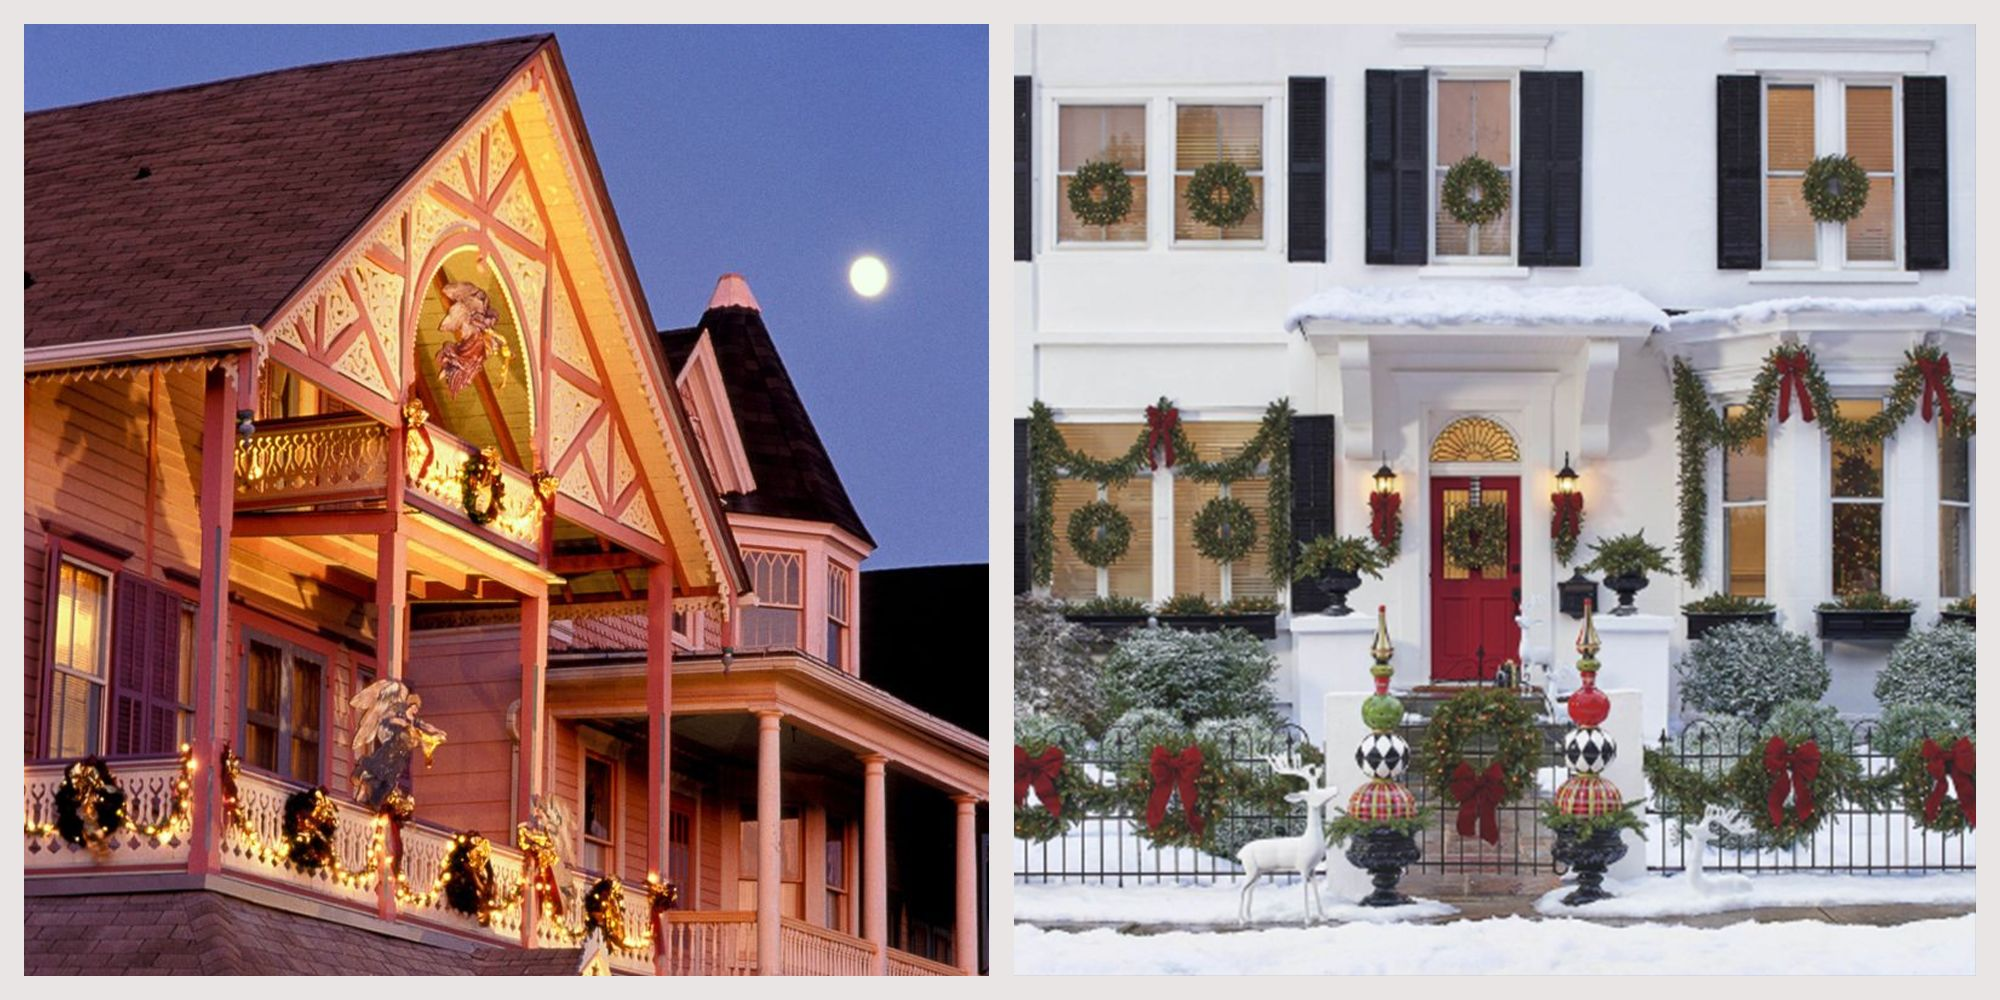 75 Outdoor Christmas Decorations From Understated to Extravagant